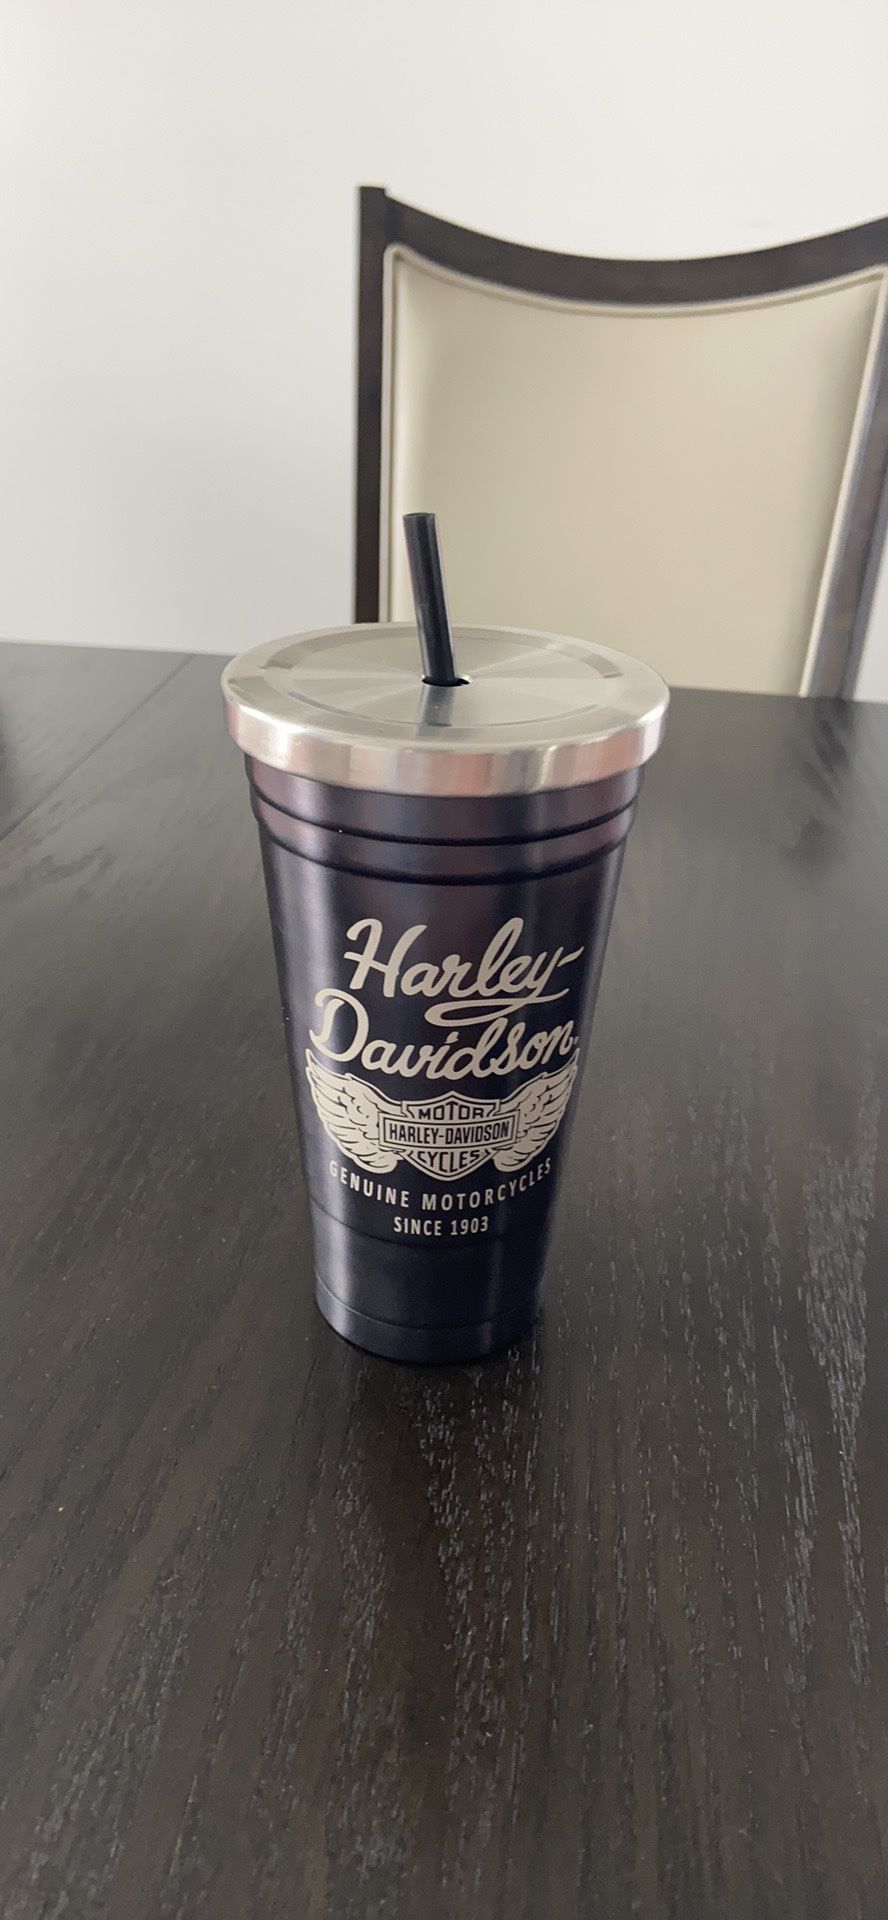 Harley Davidson stainless steel cup with straw